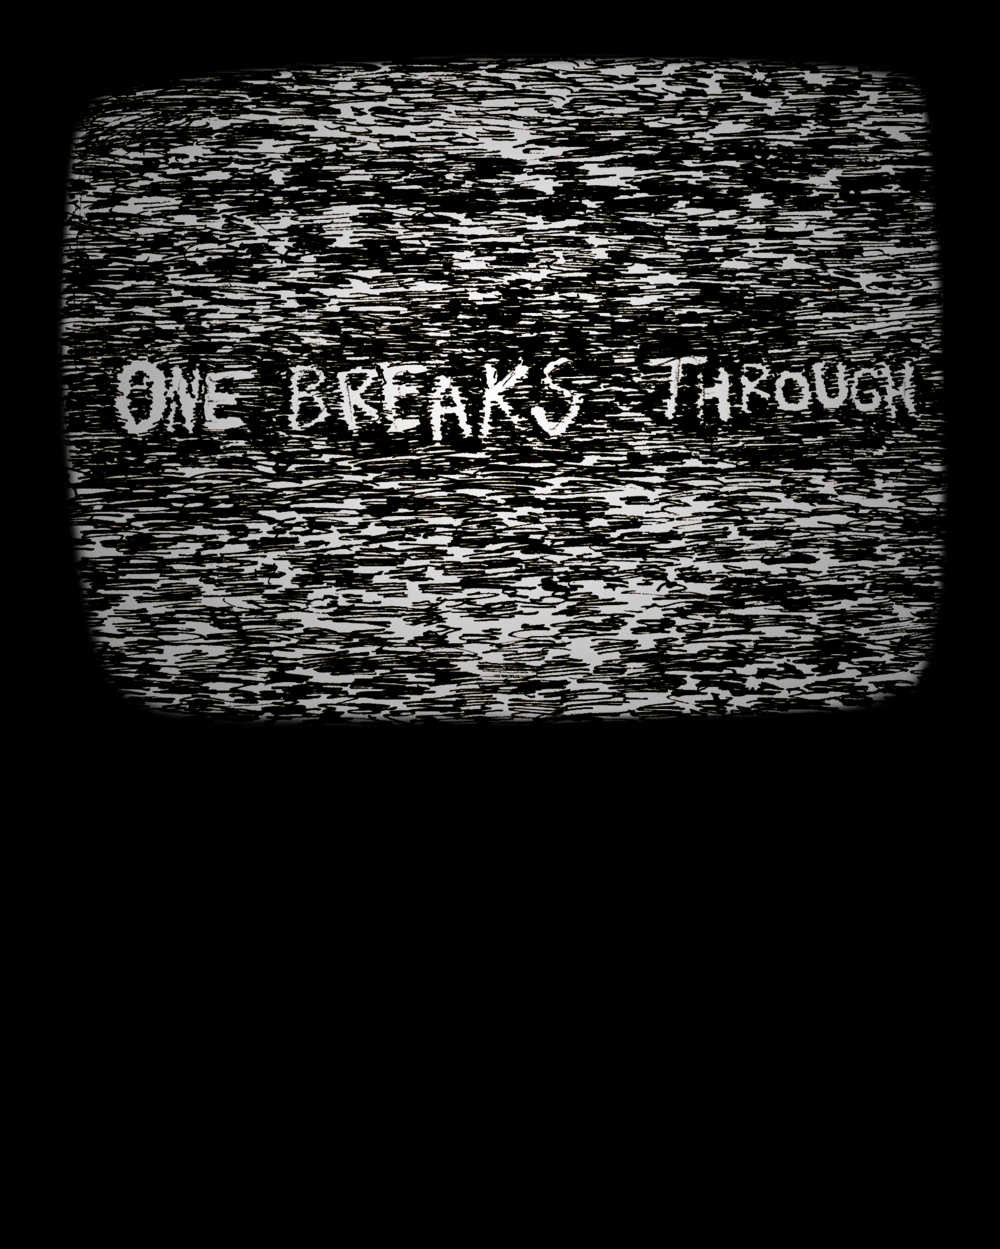 42316-One Breaks Through-1-3.png